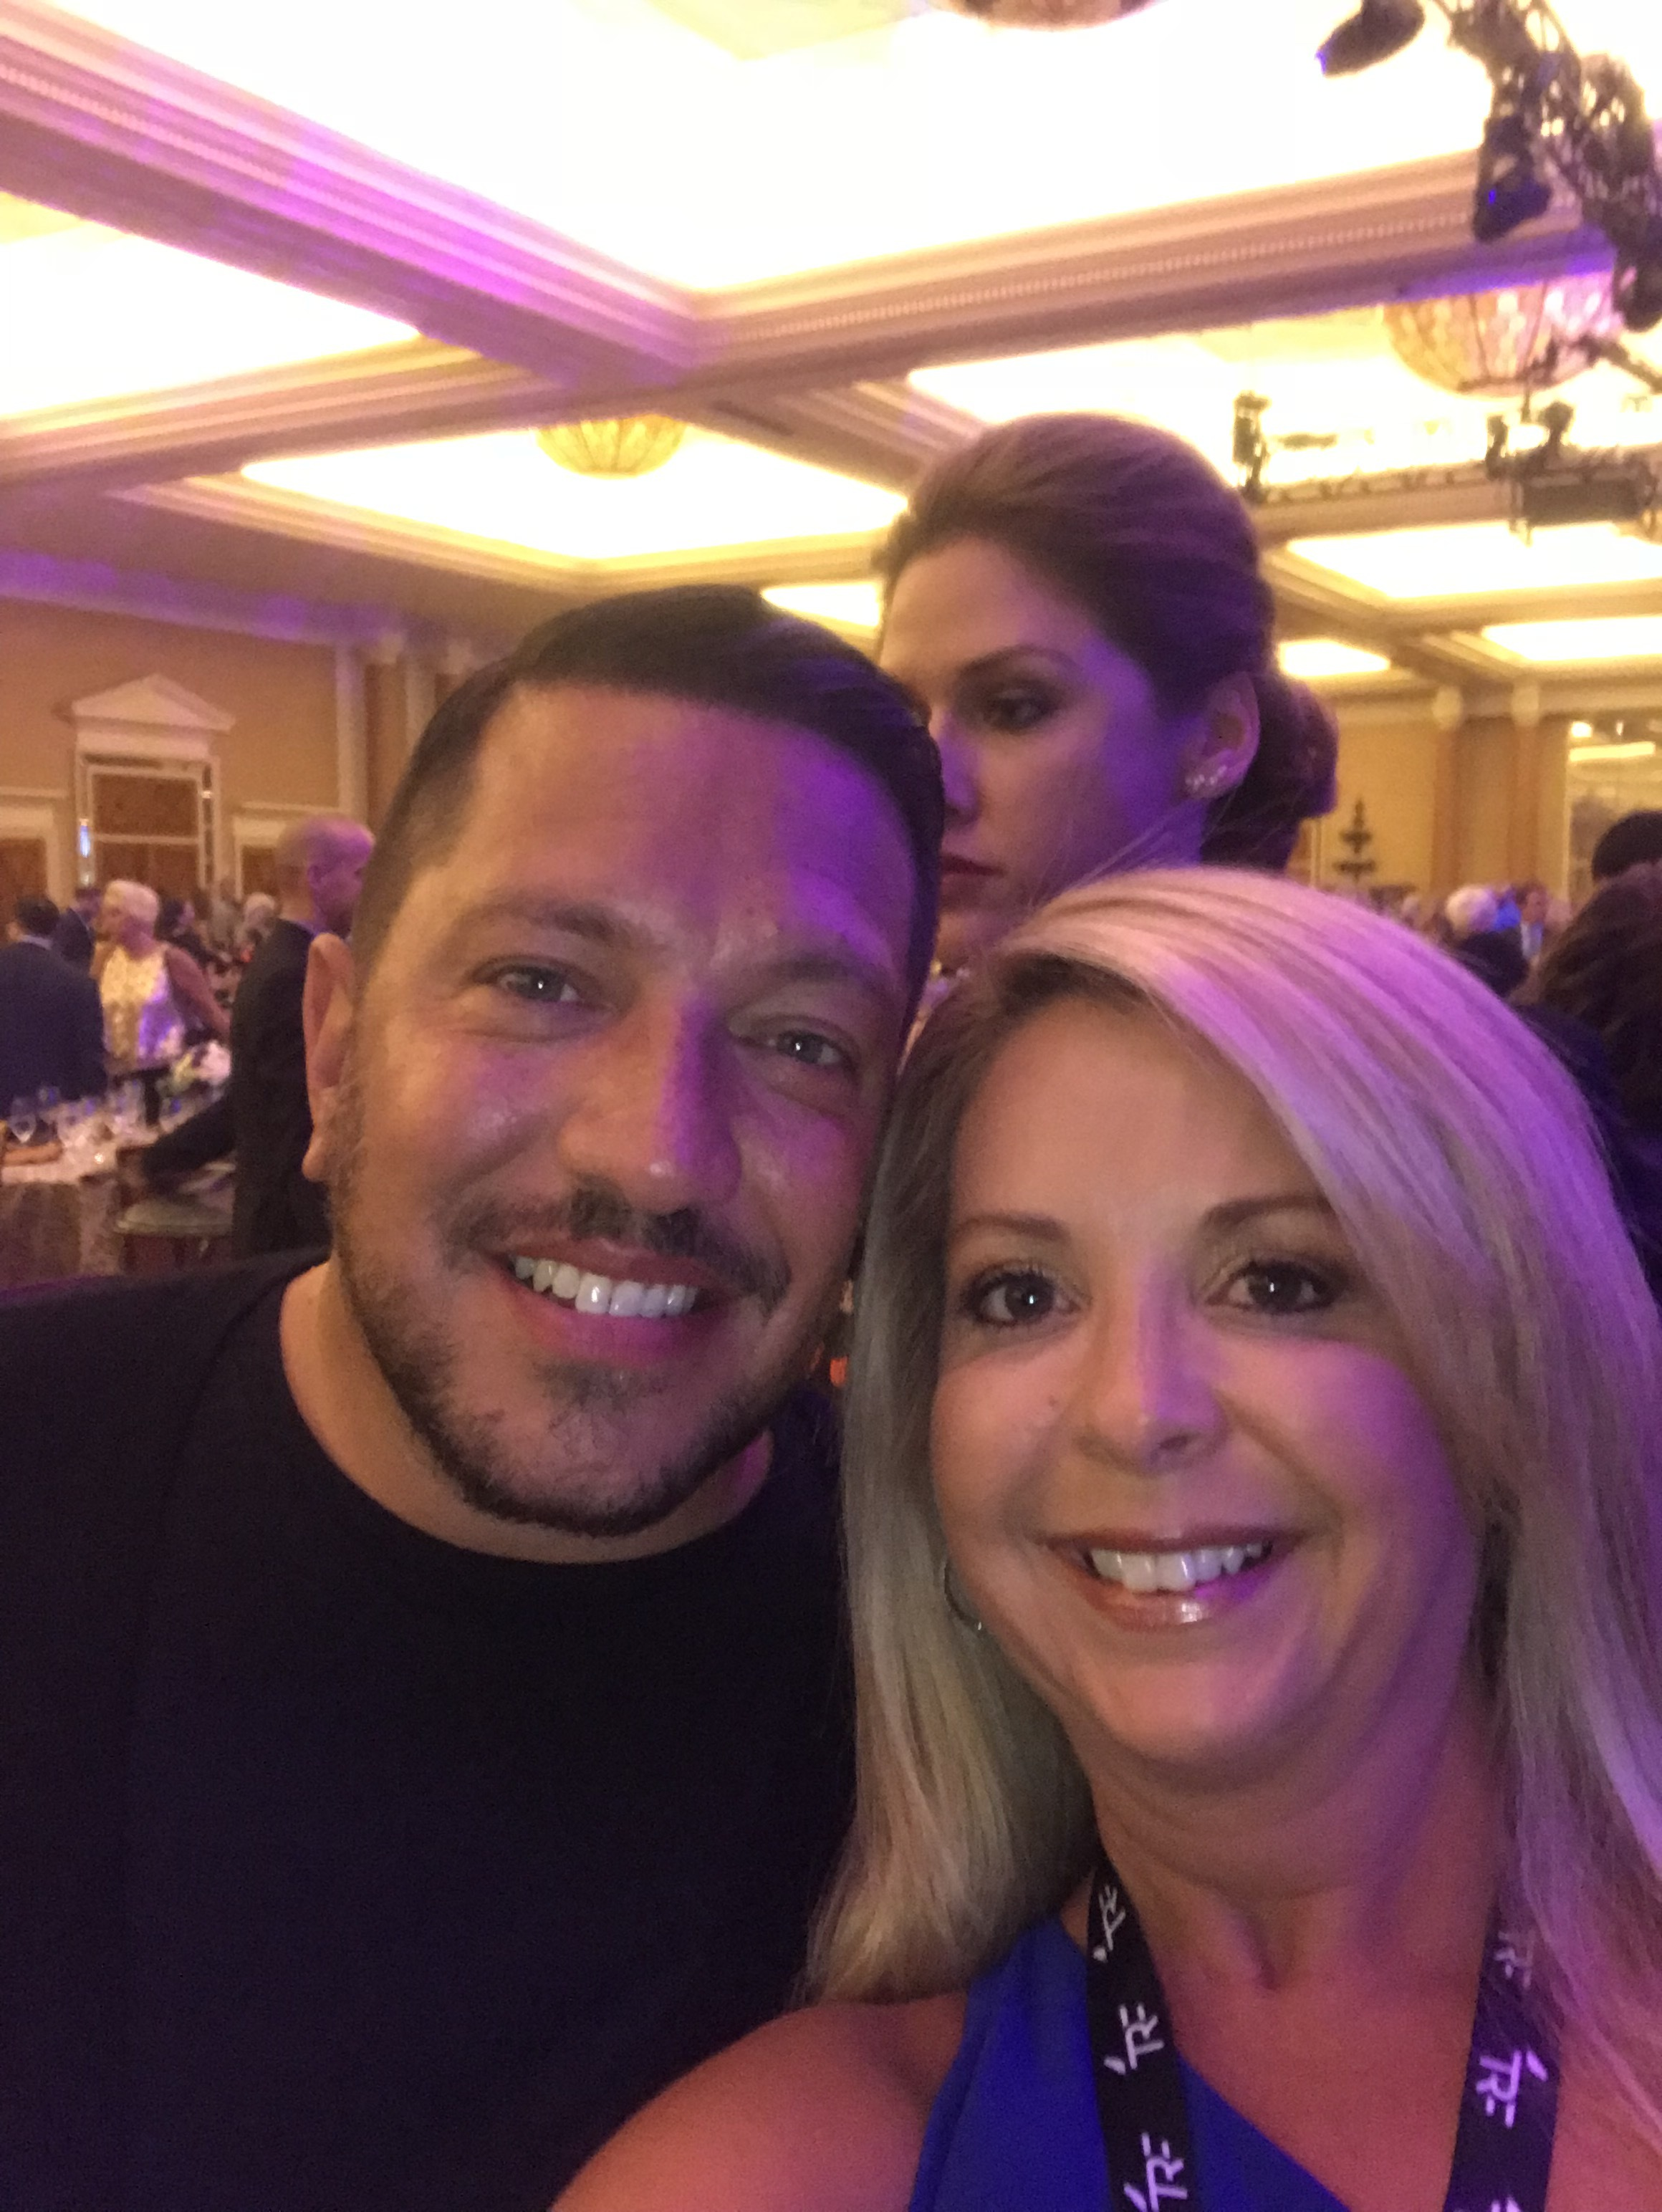 Sal Vulcano of Impractical Jokers